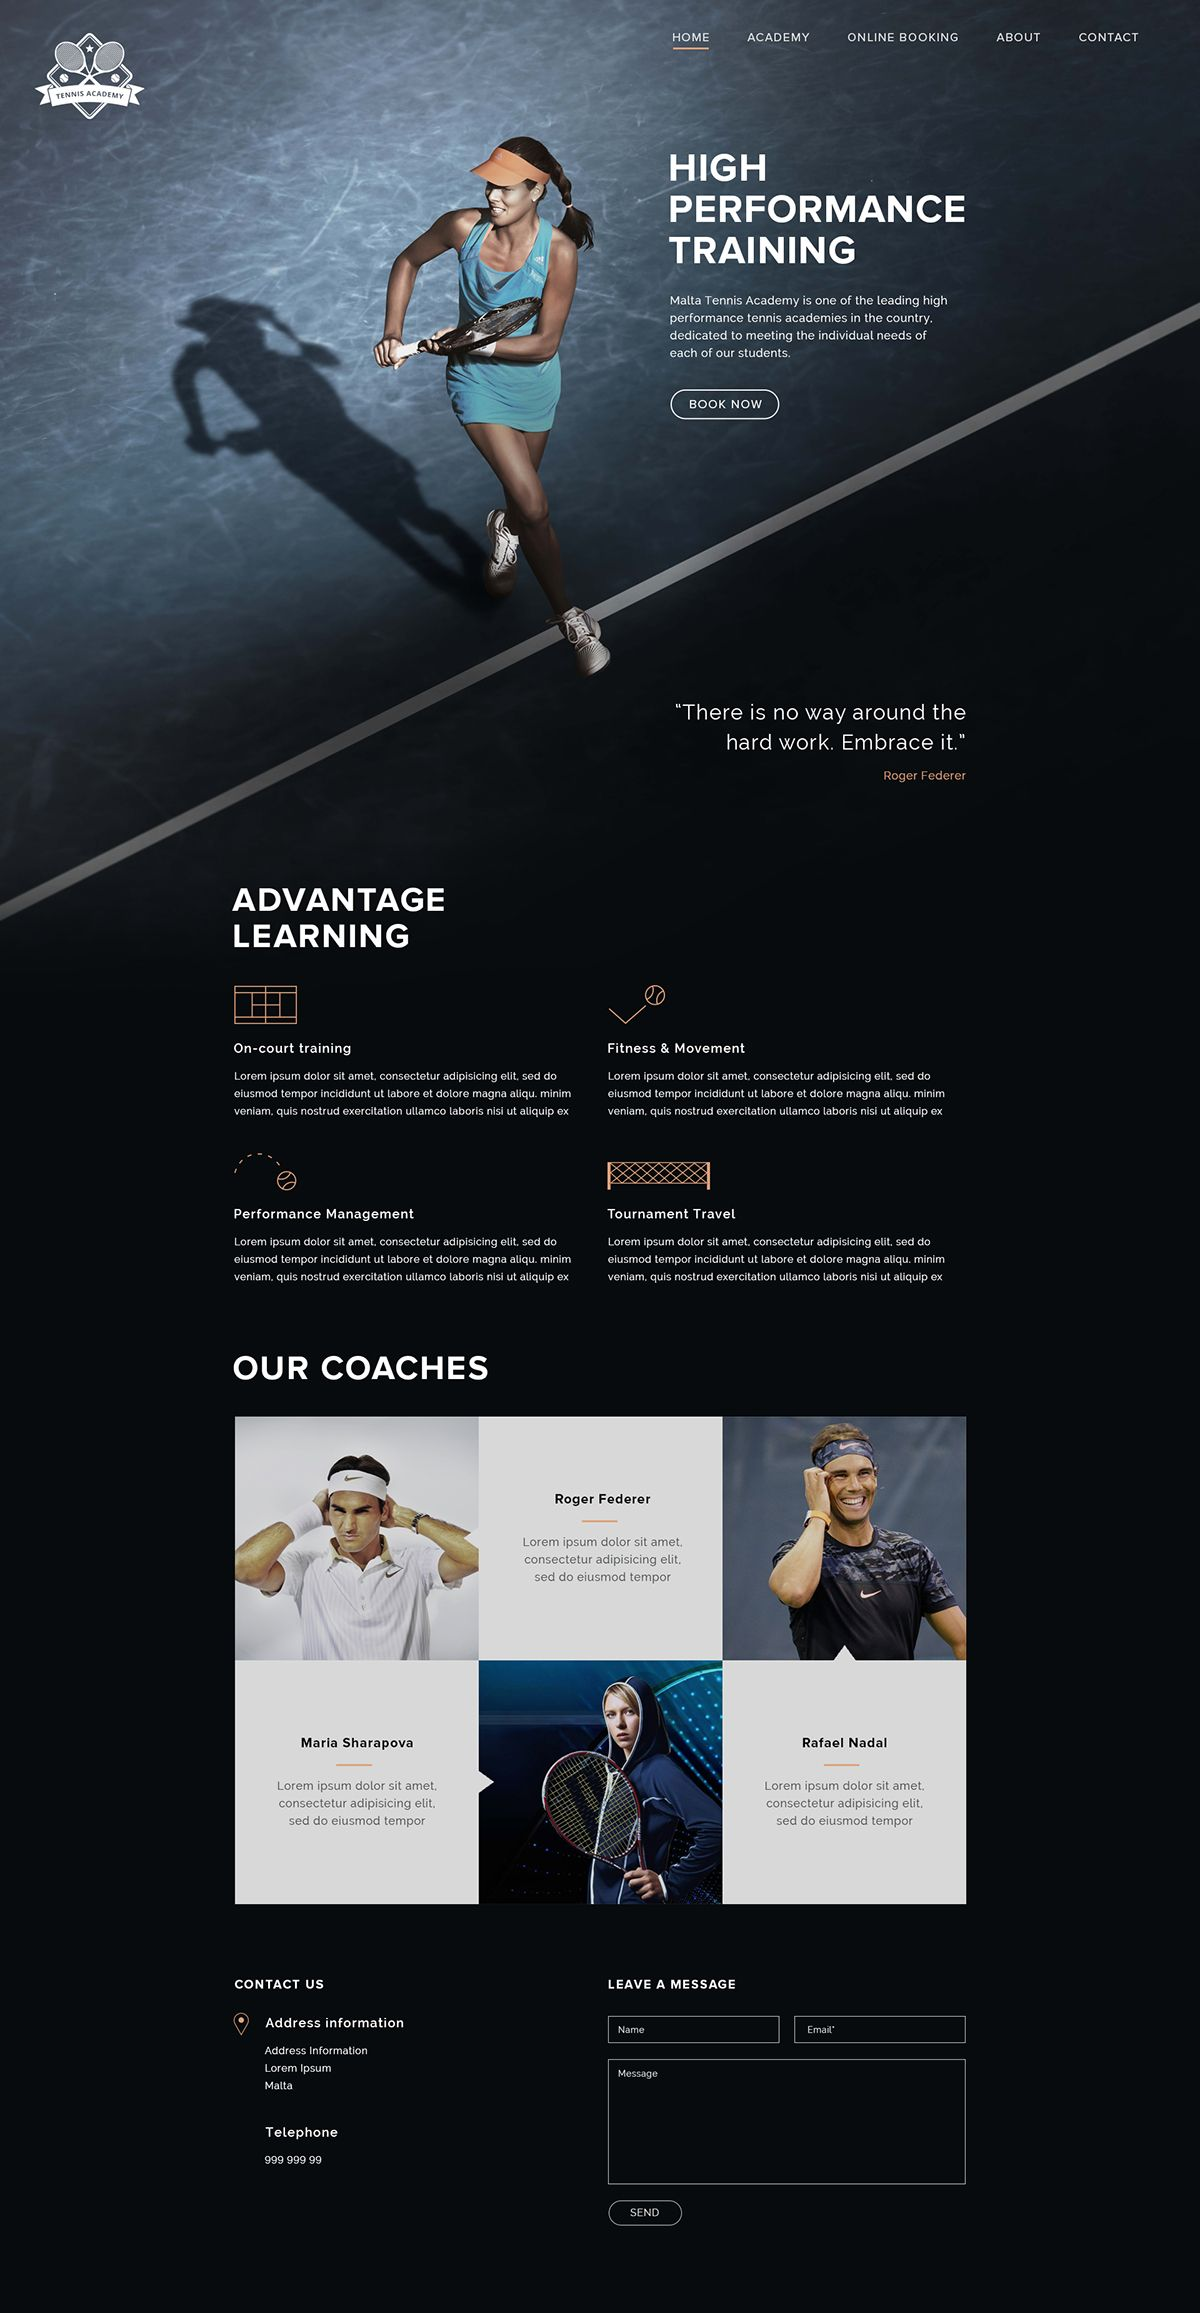 Tennis Academy Web Design Student Project Web Design Wordpress Website Design Webpage Design